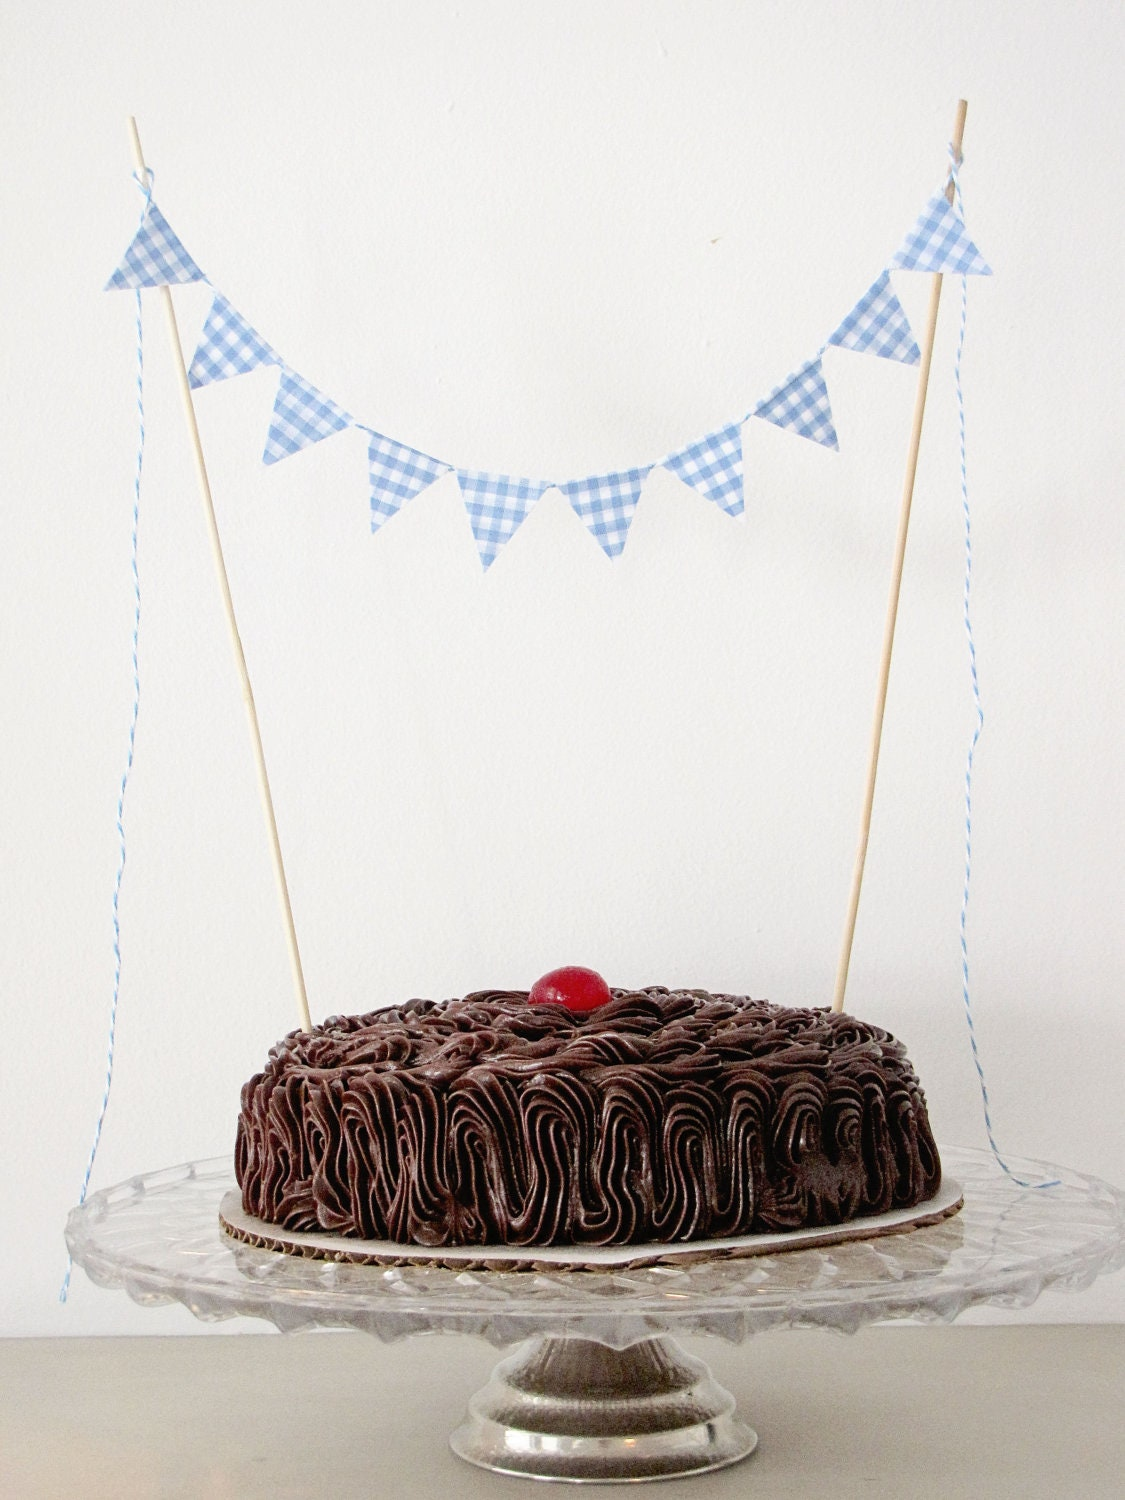 Fabric Cake Bunting Decoration - Cake Topper - Wedding, Birthday Party, Shower Decor in blue gingham